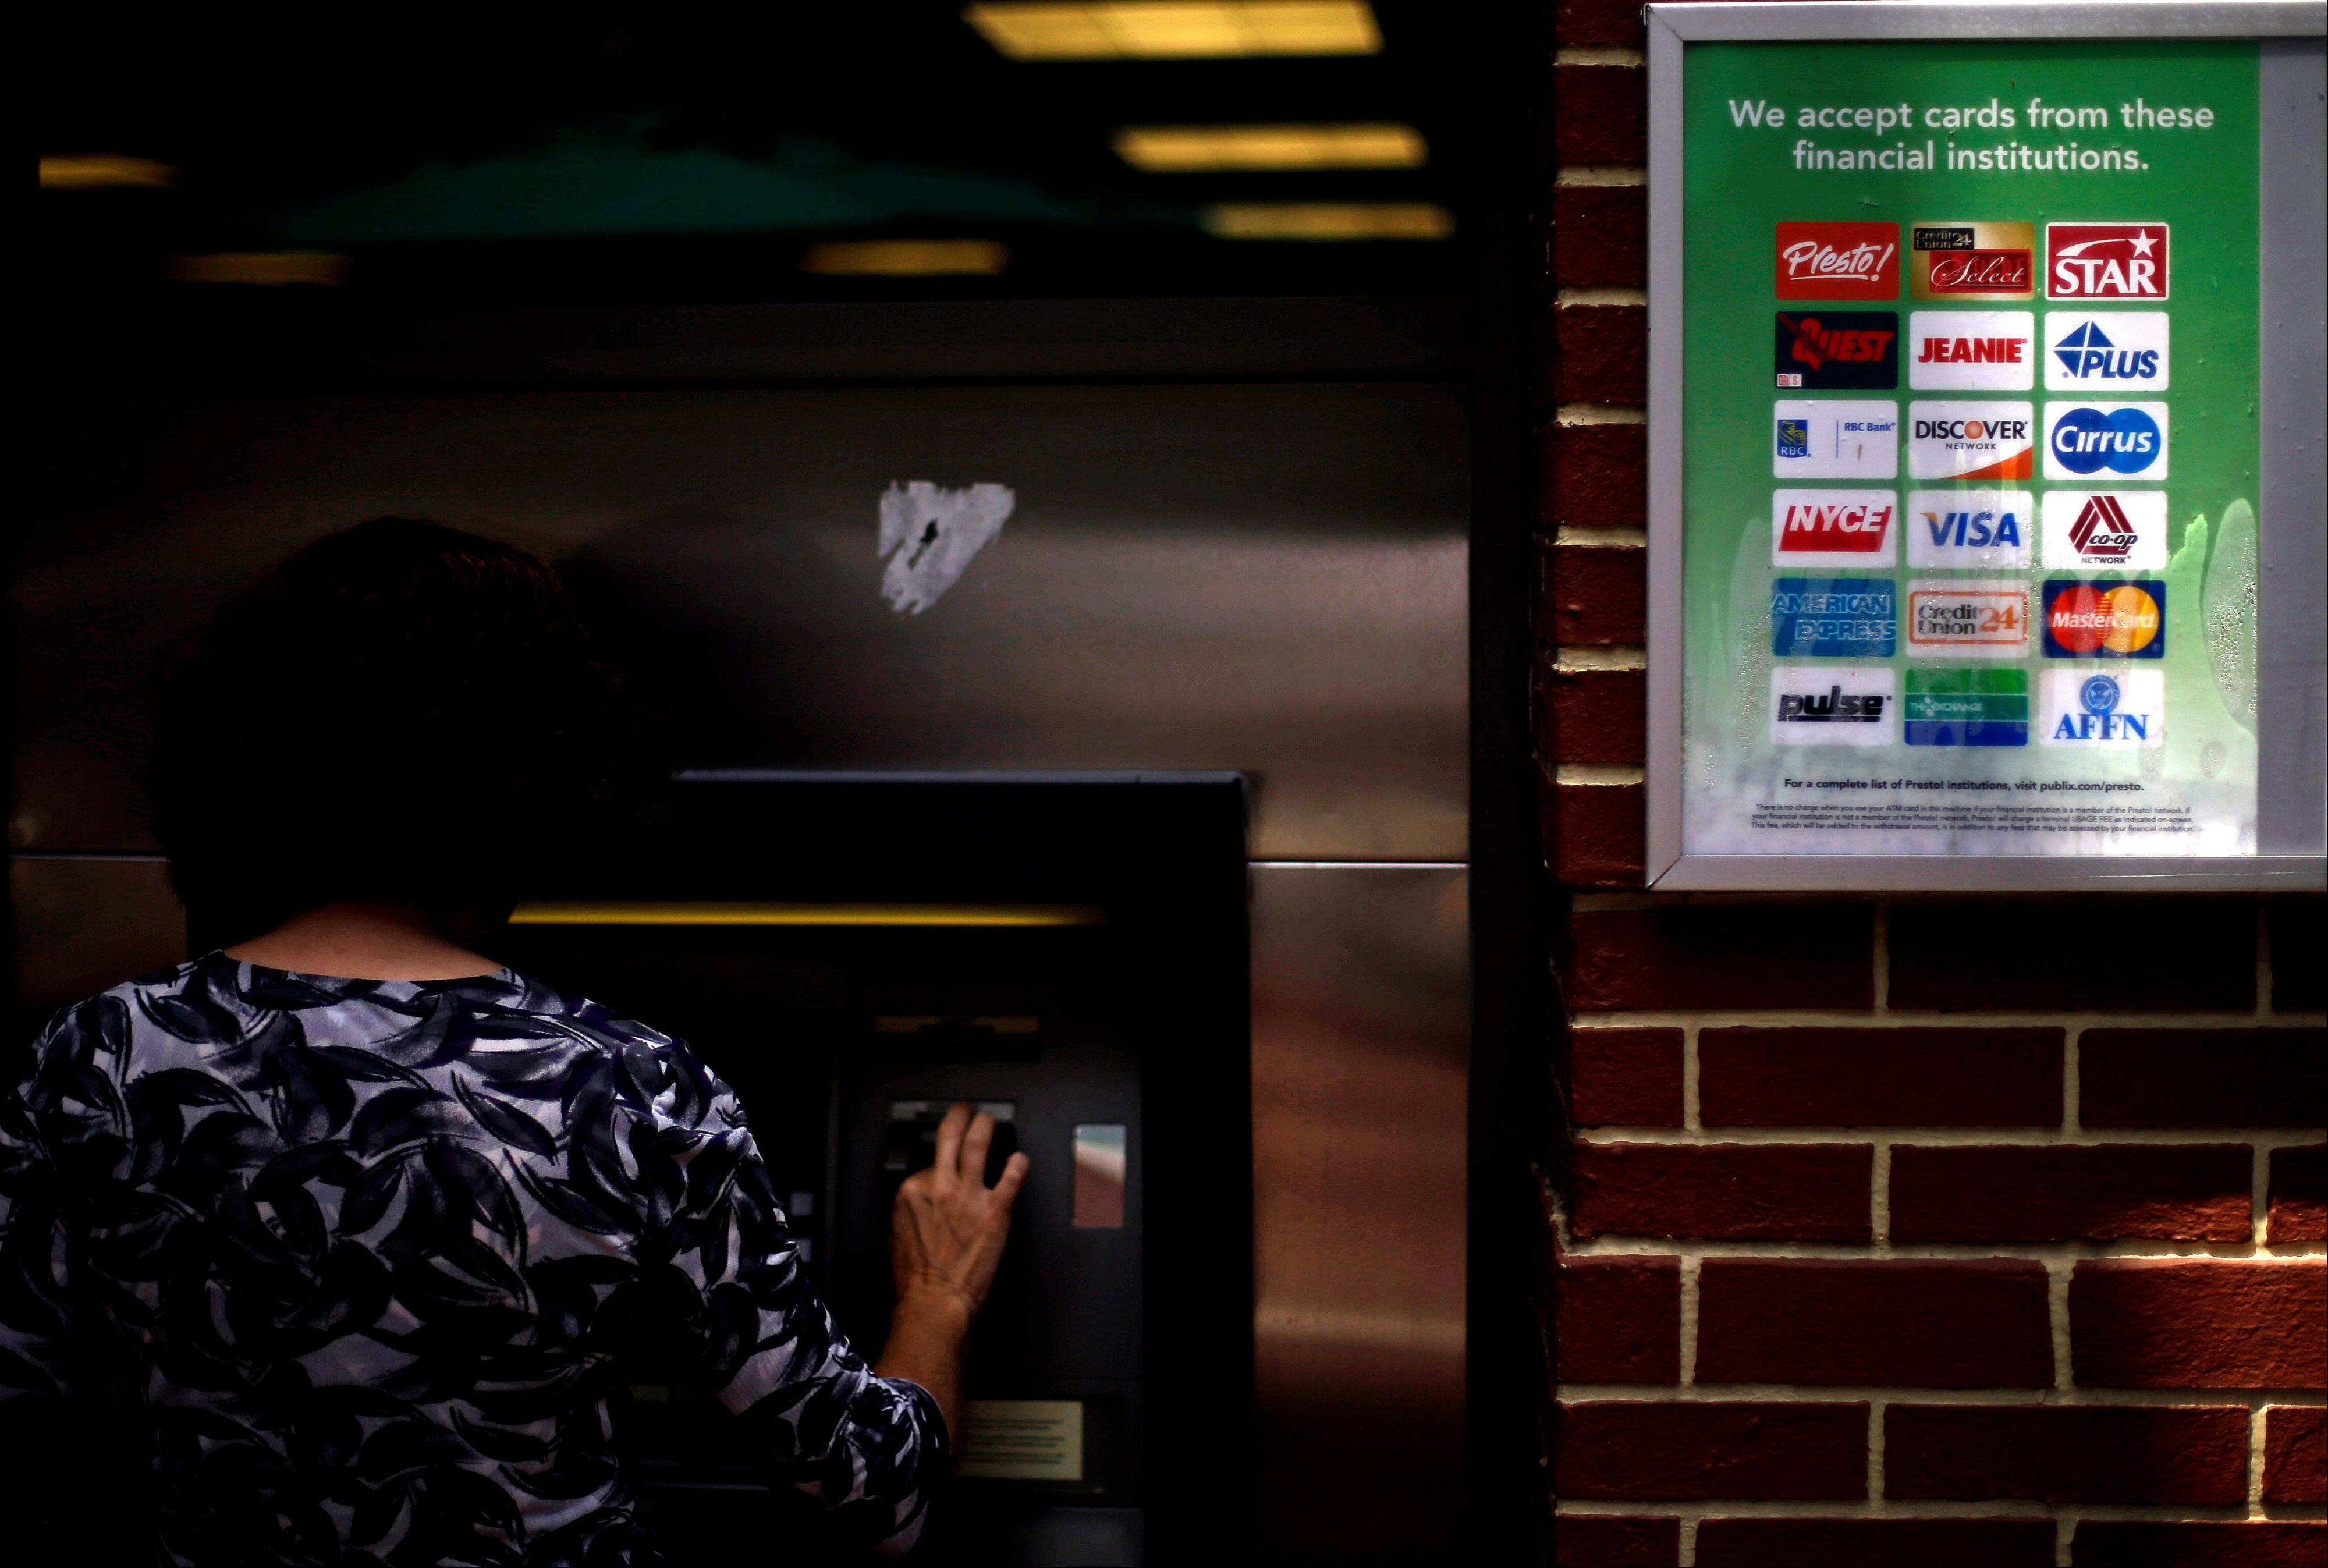 Associated Press/July 16, 2012Credit logos are seen as a consumer withdraws money from an ATM in Atlanta.